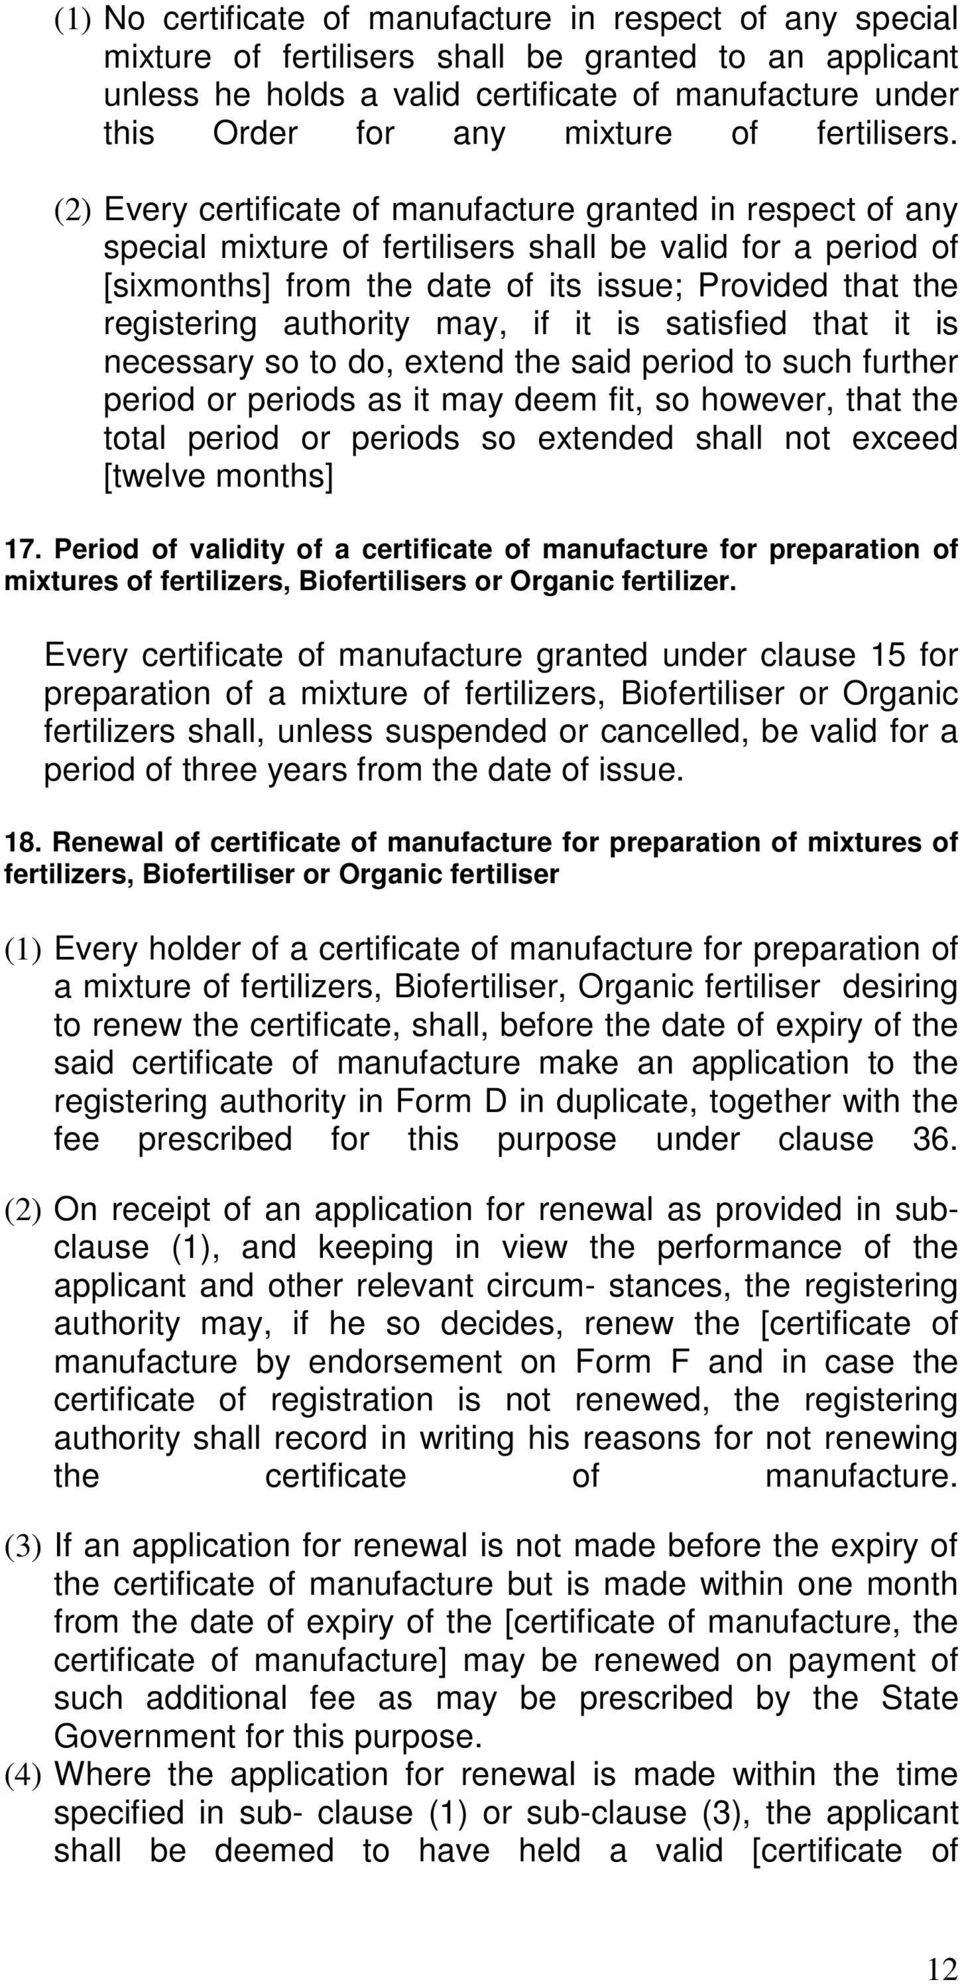 (2) Every certificate of manufacture granted in respect of any special mixture of fertilisers shall be valid for a period of [sixmonths] from the date of its issue; Provided that the registering